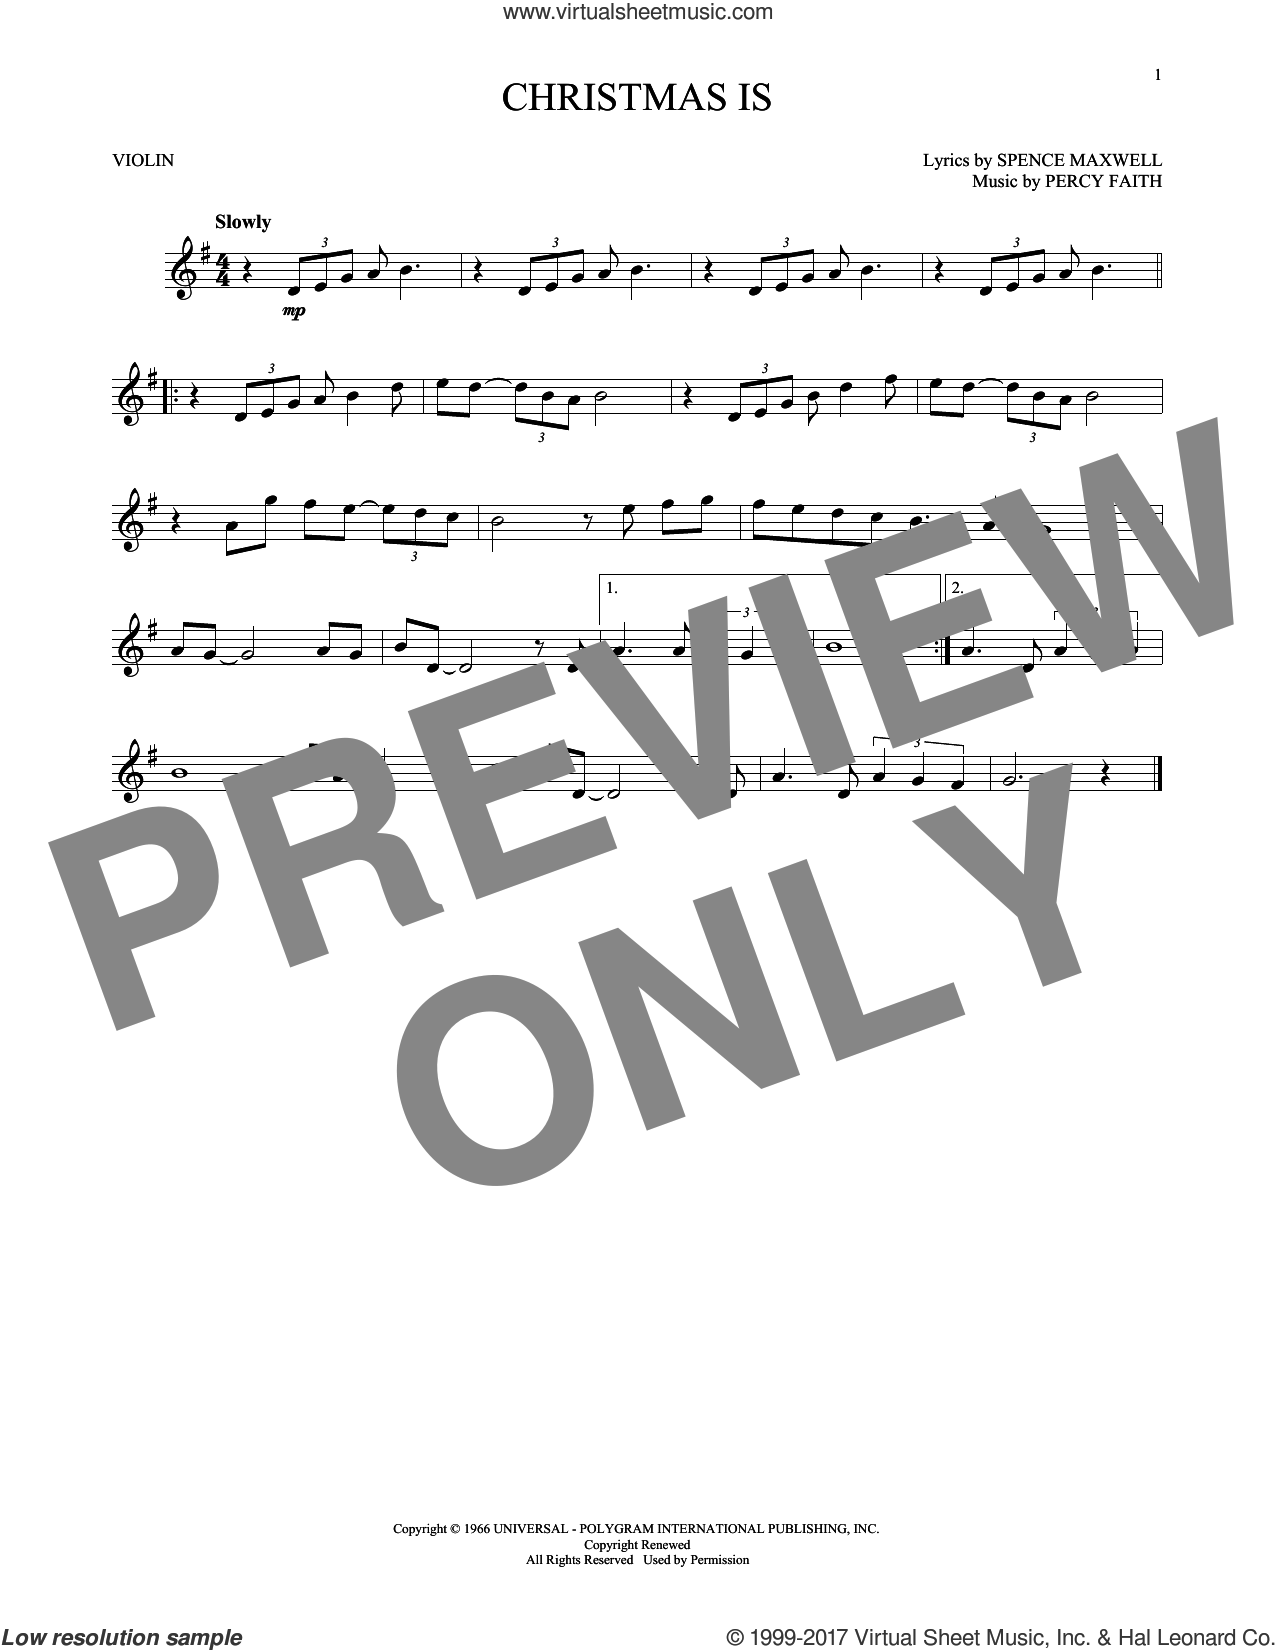 Christmas Is sheet music for violin solo by Percy Faith and Spence Maxwell, intermediate